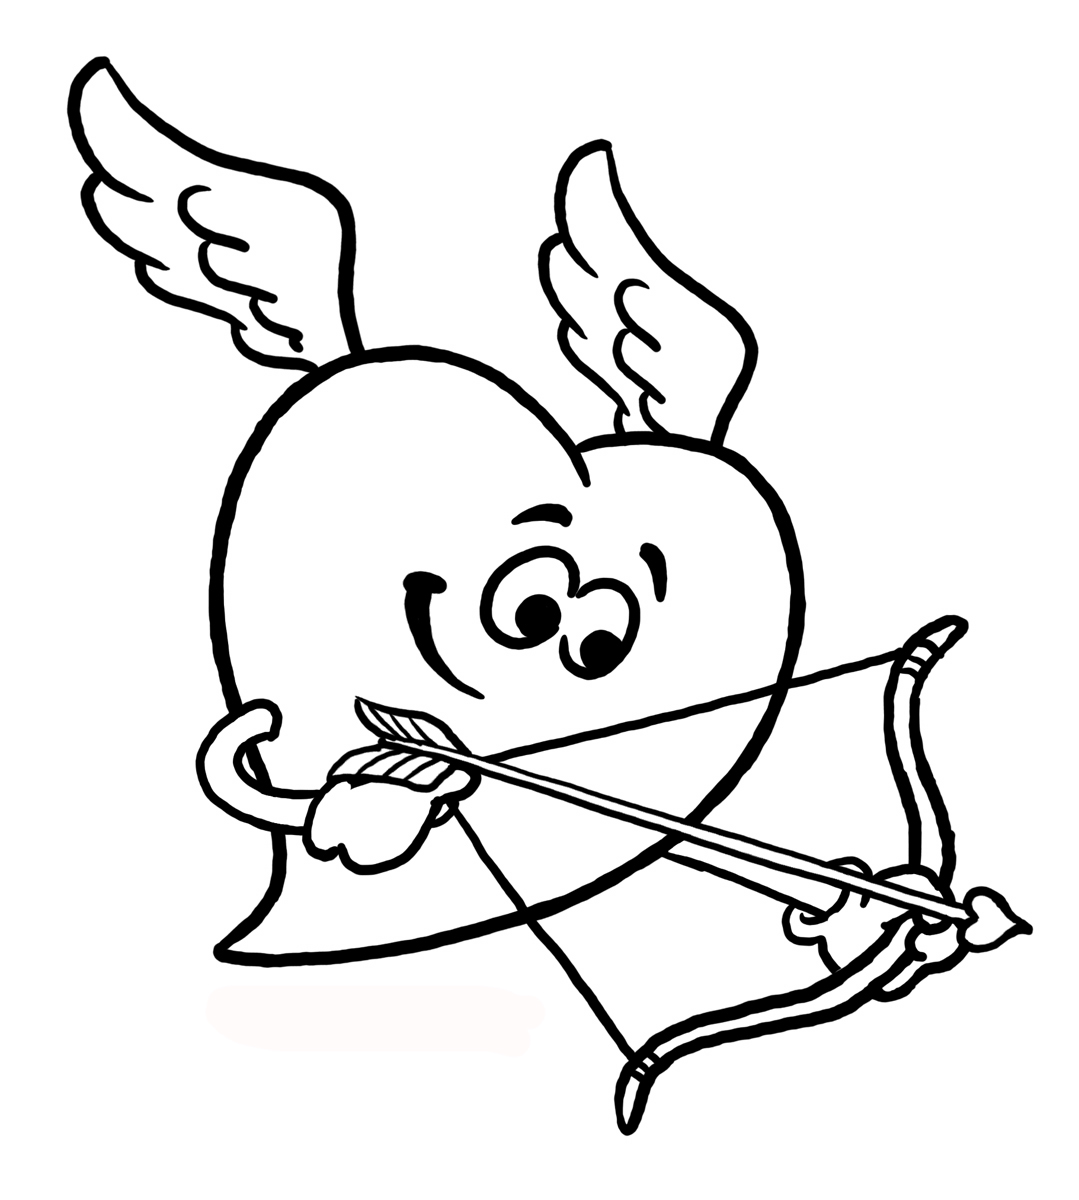 cupid coloring book pages - photo#14